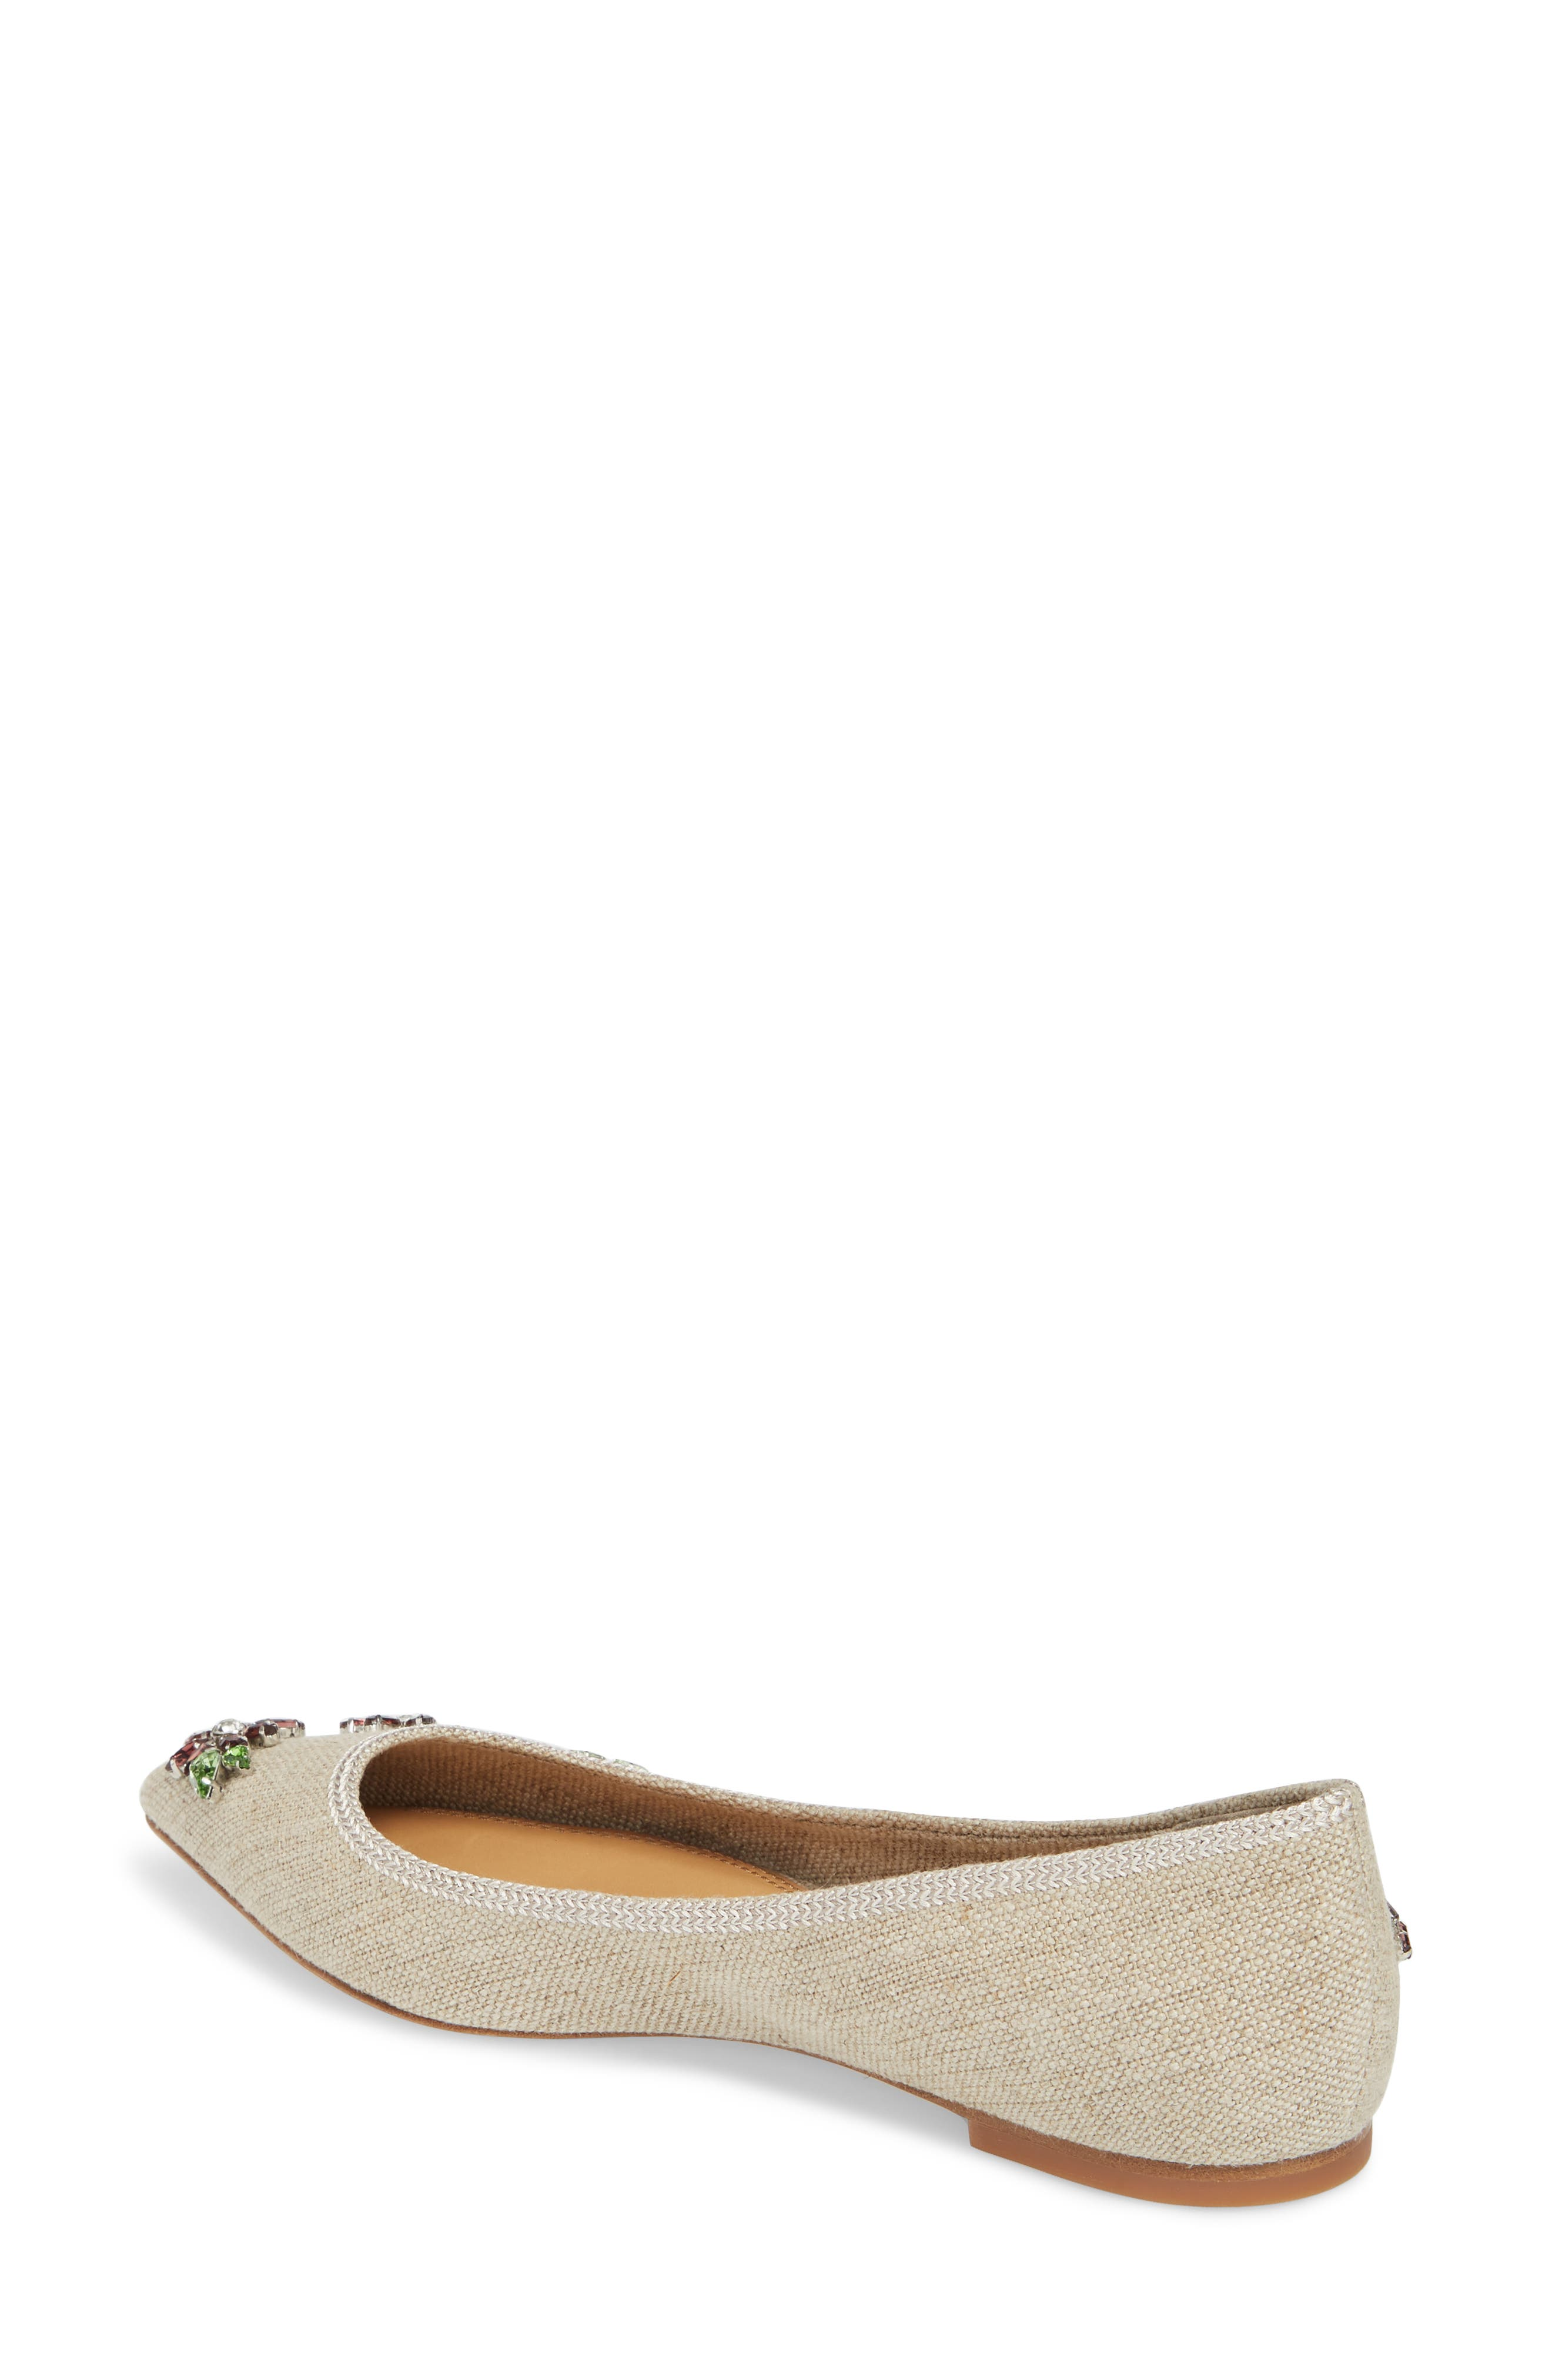 Meadow Embellished Pointy Toe Flat,                             Alternate thumbnail 2, color,                             Natural/ Multi Color